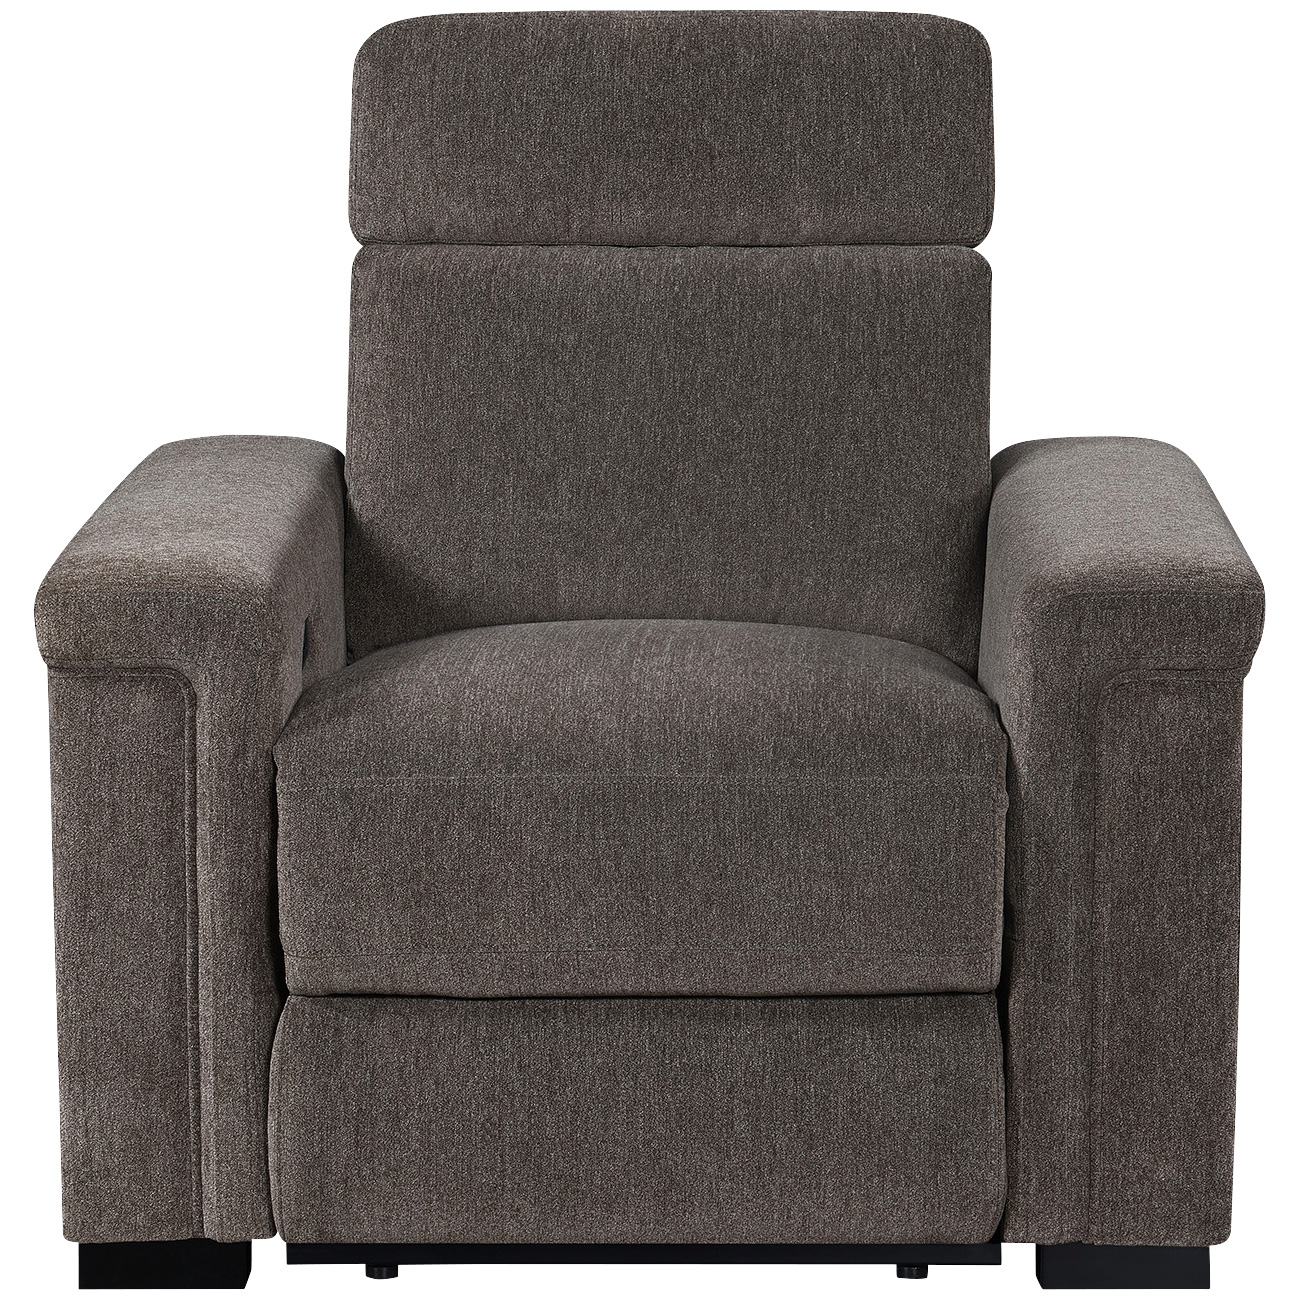 Motion 1Nnovations   Lavenue Brown Power Plus Recliner Chair